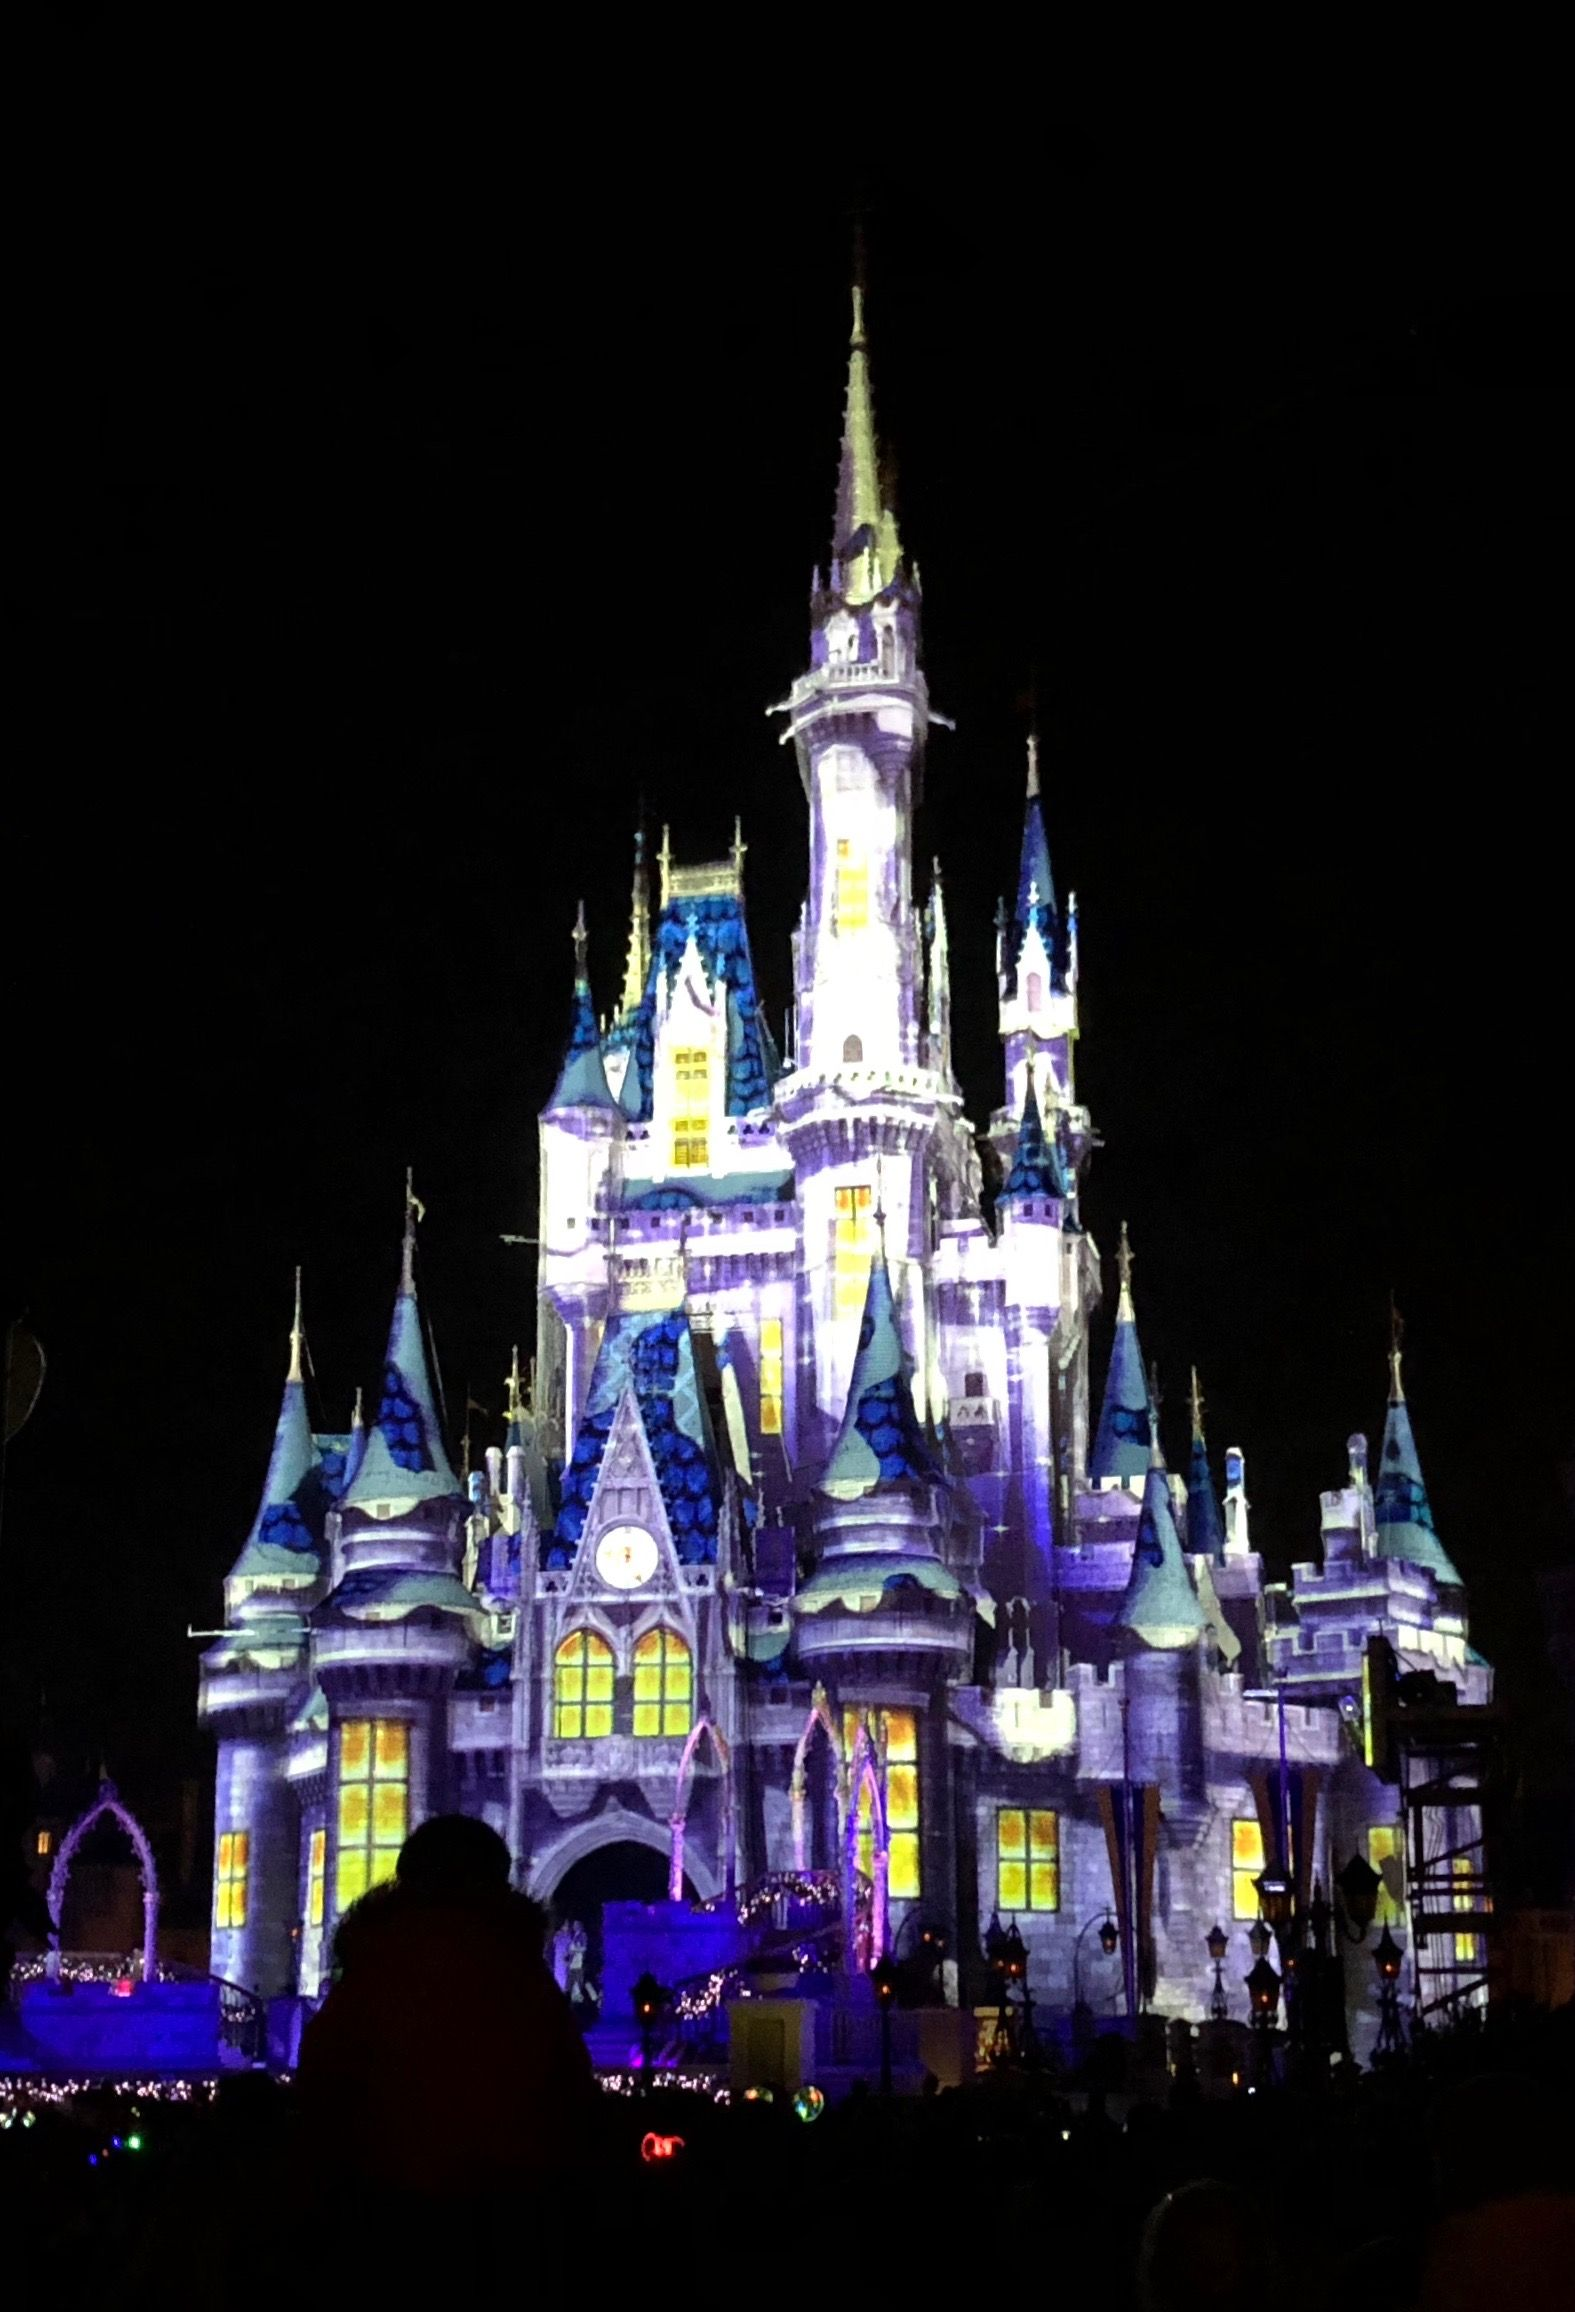 Crazy lighting on cinderellas castle covered in the magic kingdom crazy lighting on cinderellas castle covered in the magic kingdom during the very merry christmas party in december of 2017 voltagebd Images